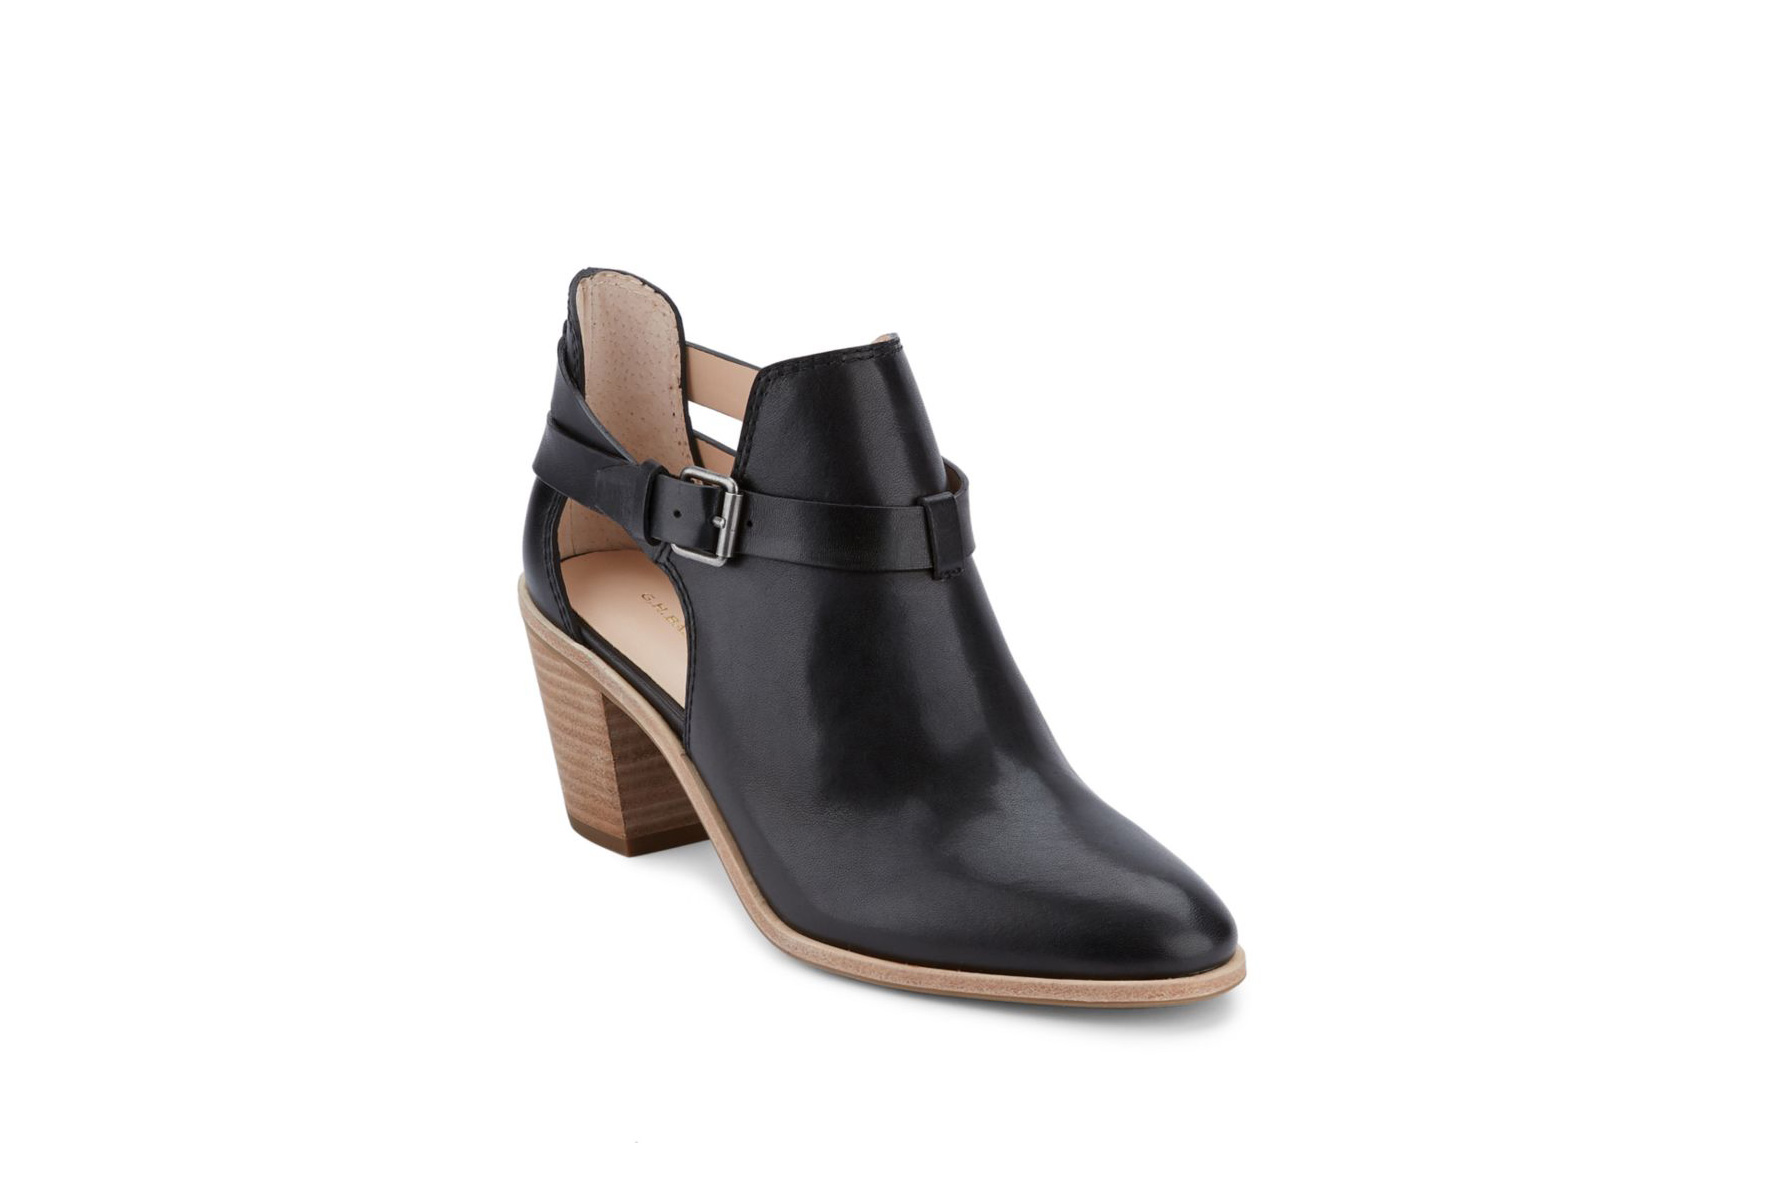 G.H. Bass Sylvia Leather Ankle Boots